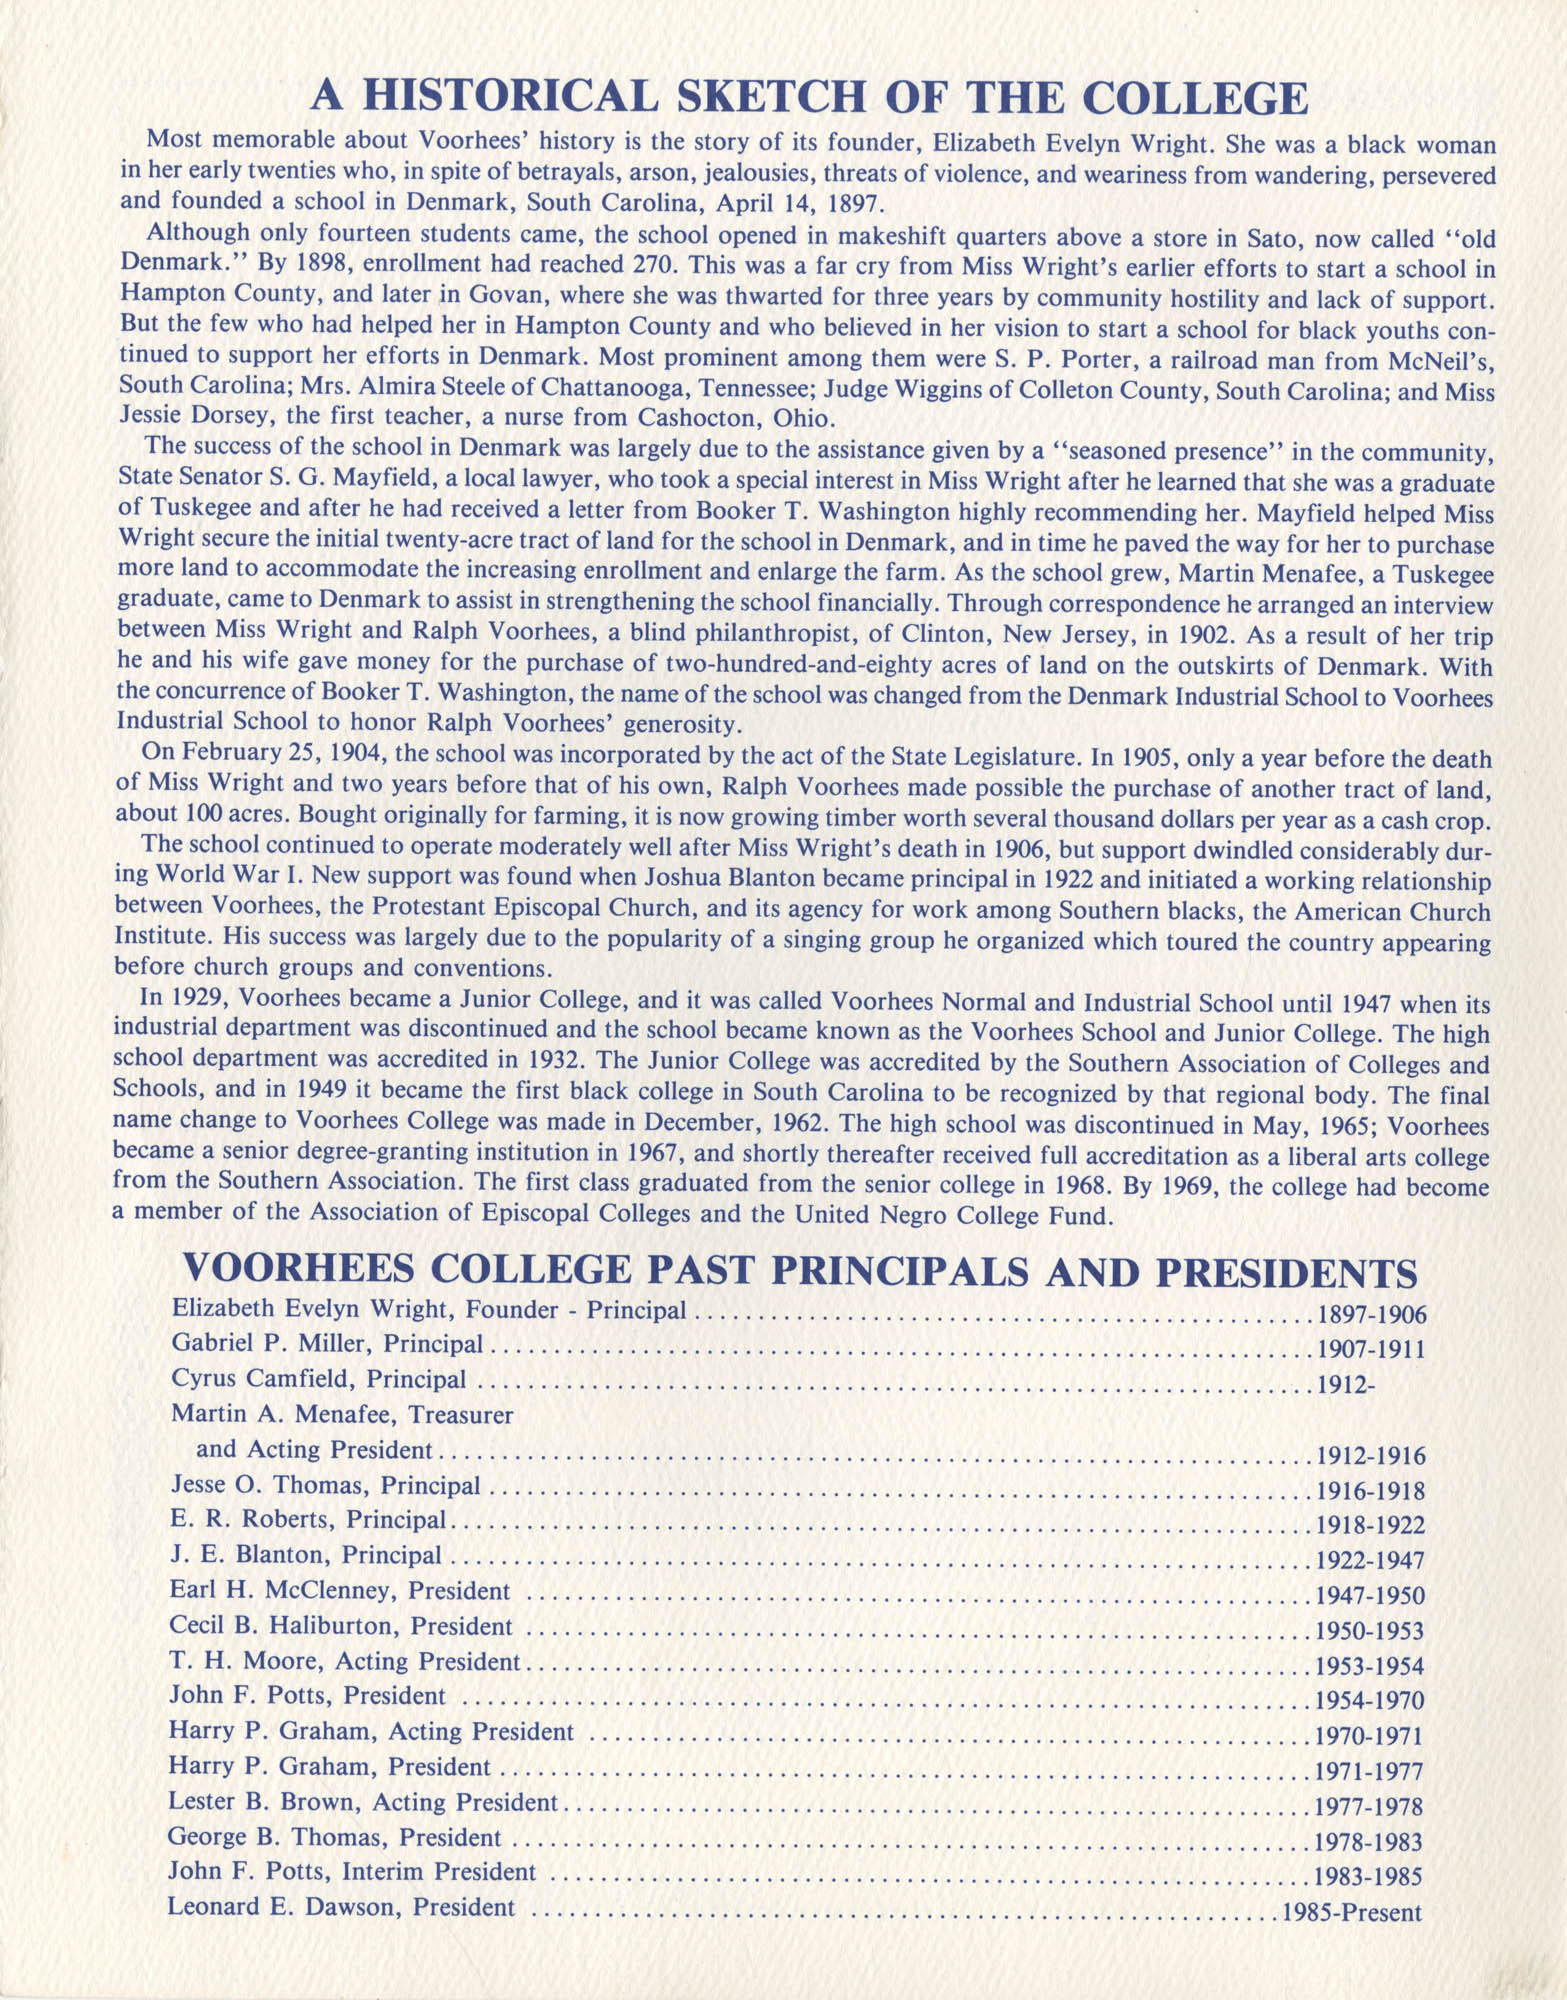 91st Anniversary of The Founding of Voorhees College, Page 1